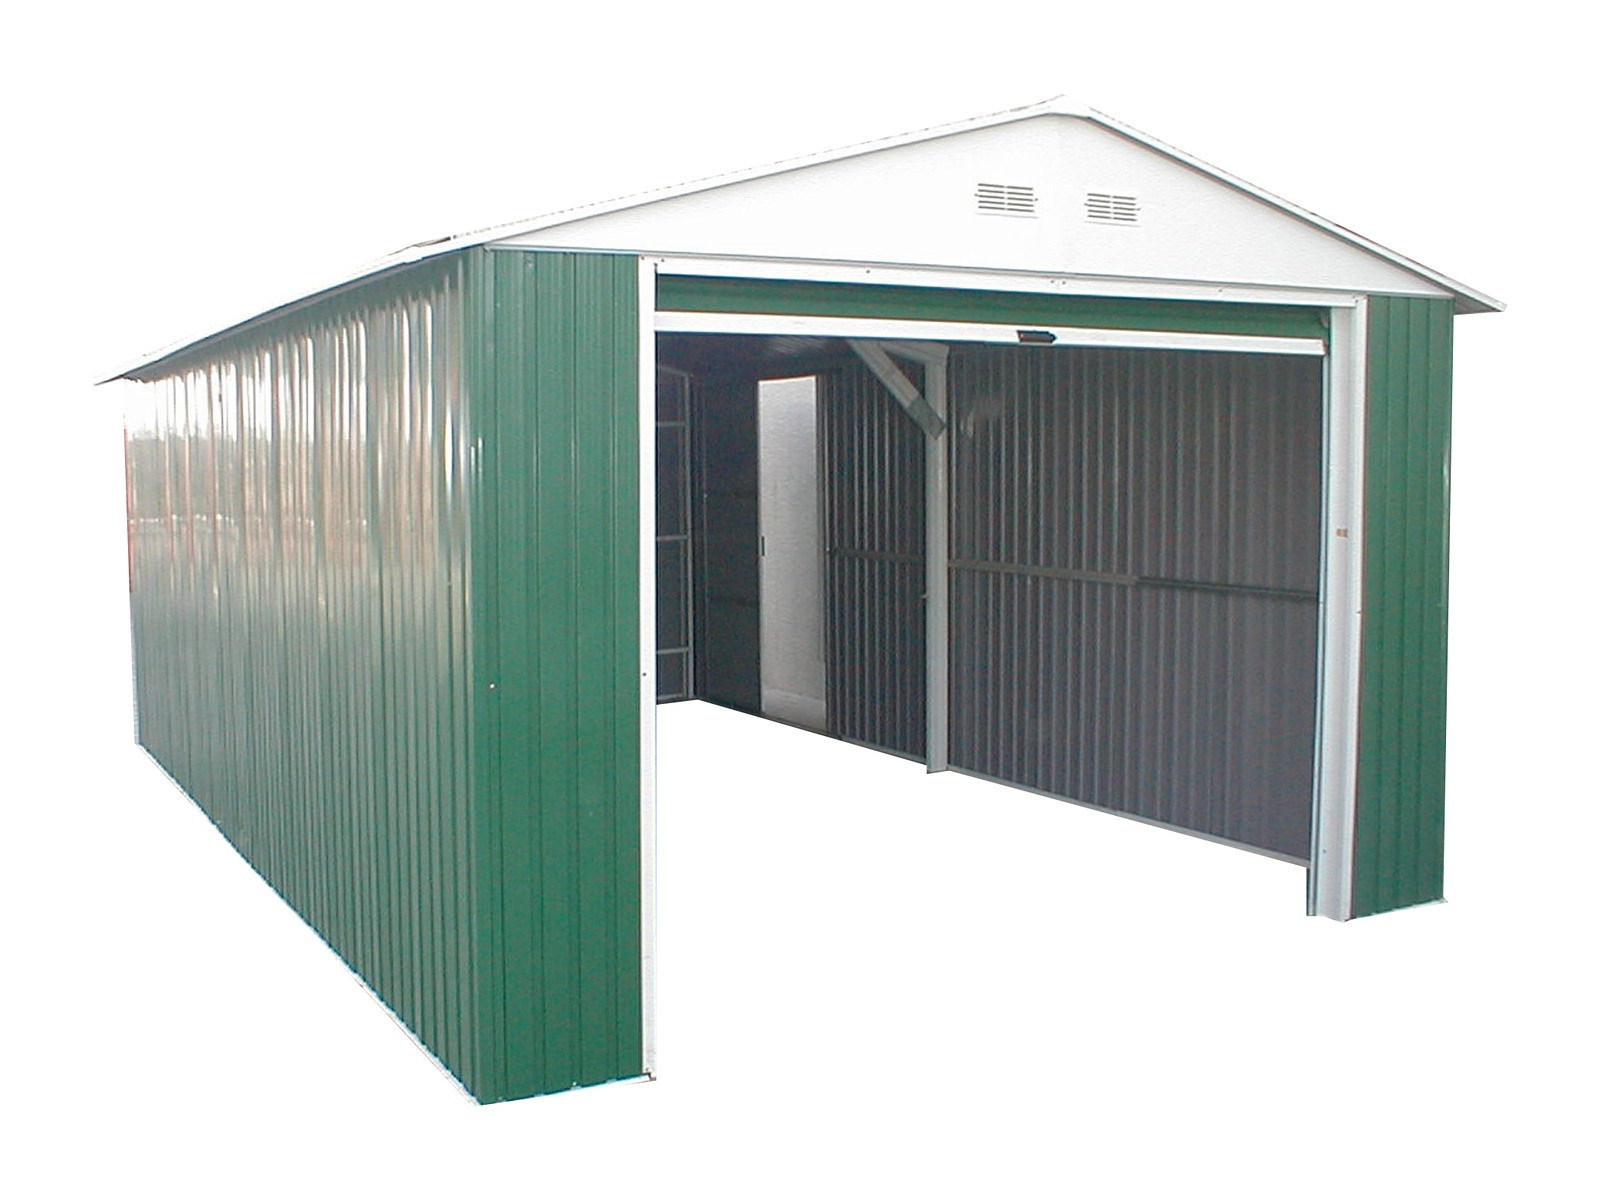 Duramax 54961 Metal Garage – 6' Metal Storage Shed Extension - Green with White Trim